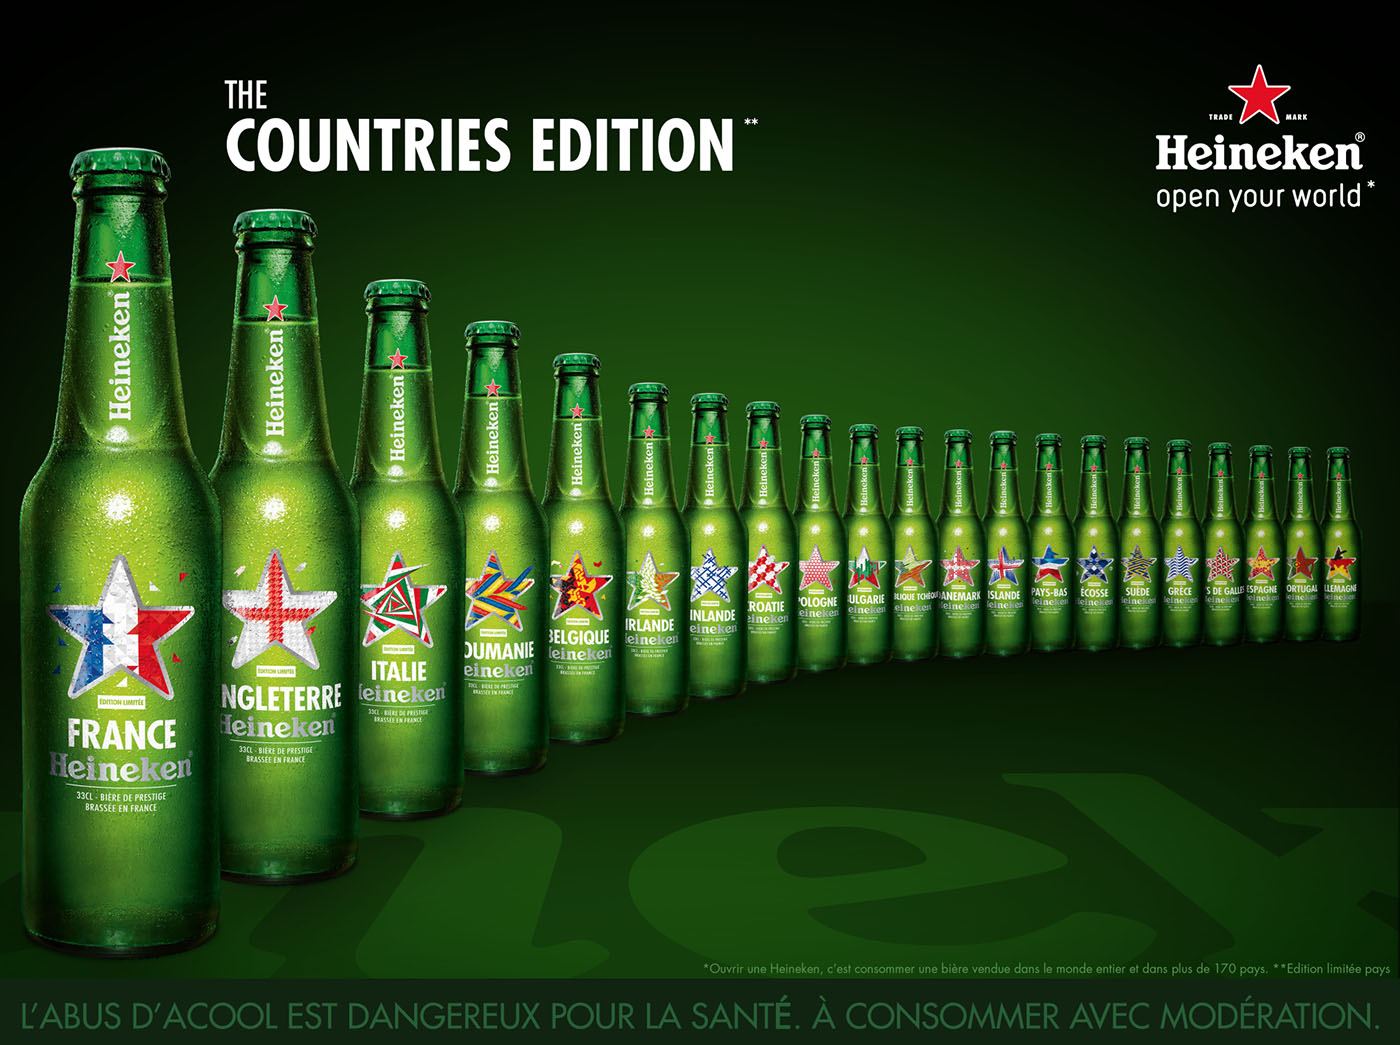 heineken-countries-edition-pays-europe-2016-packaging-drapeaux-flags-publicis-conseil-1